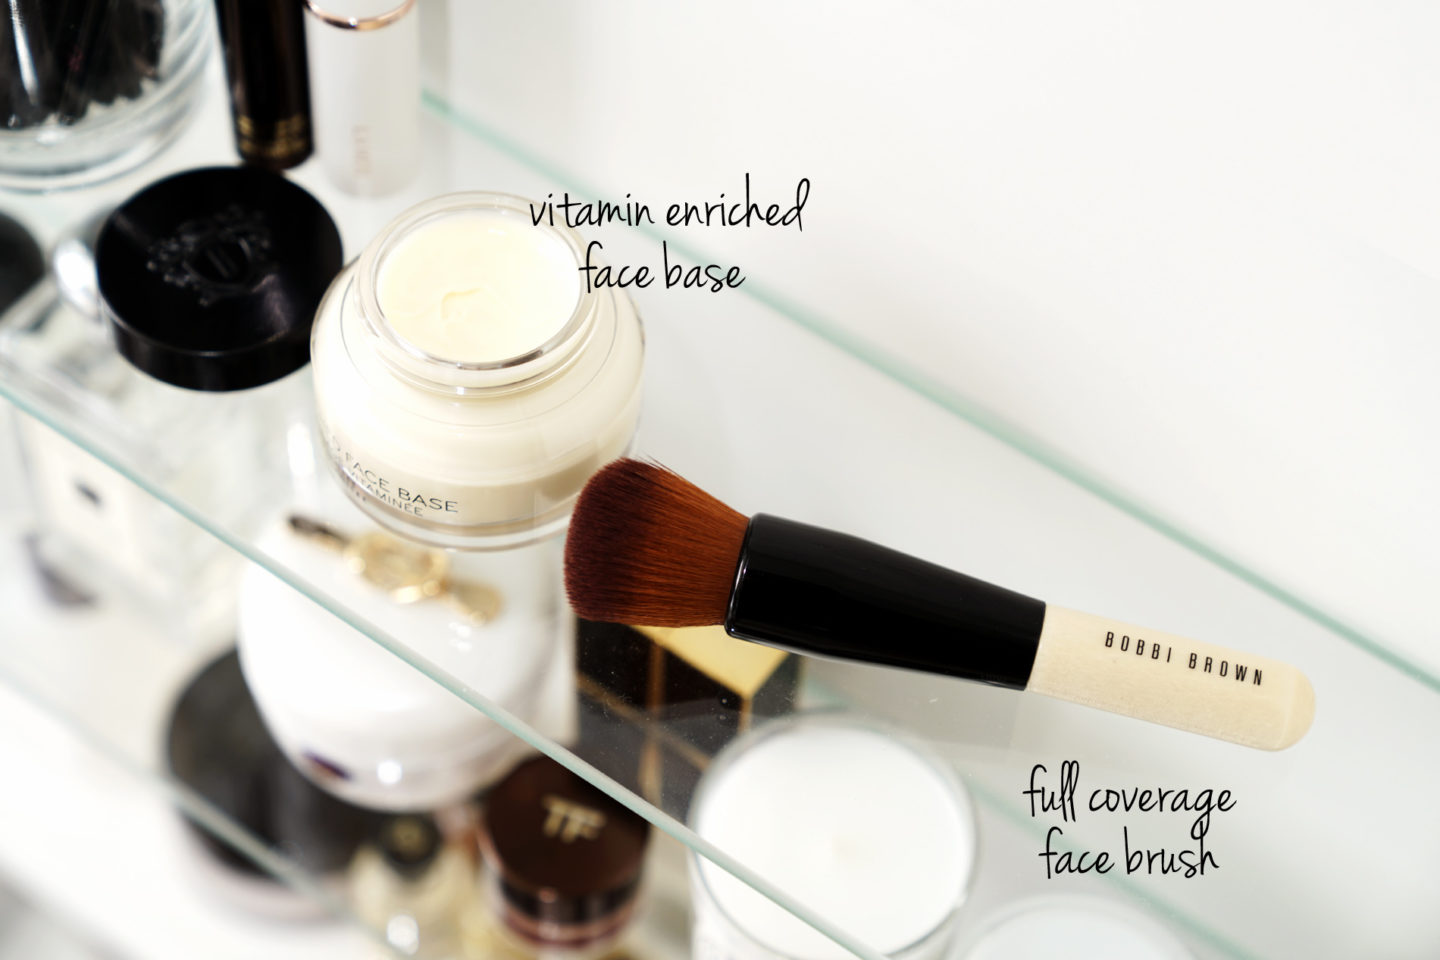 Bobbi Brown Vitamin Enriched Face Base and Full Coverage Face Brush Review via The Beauty Look Book